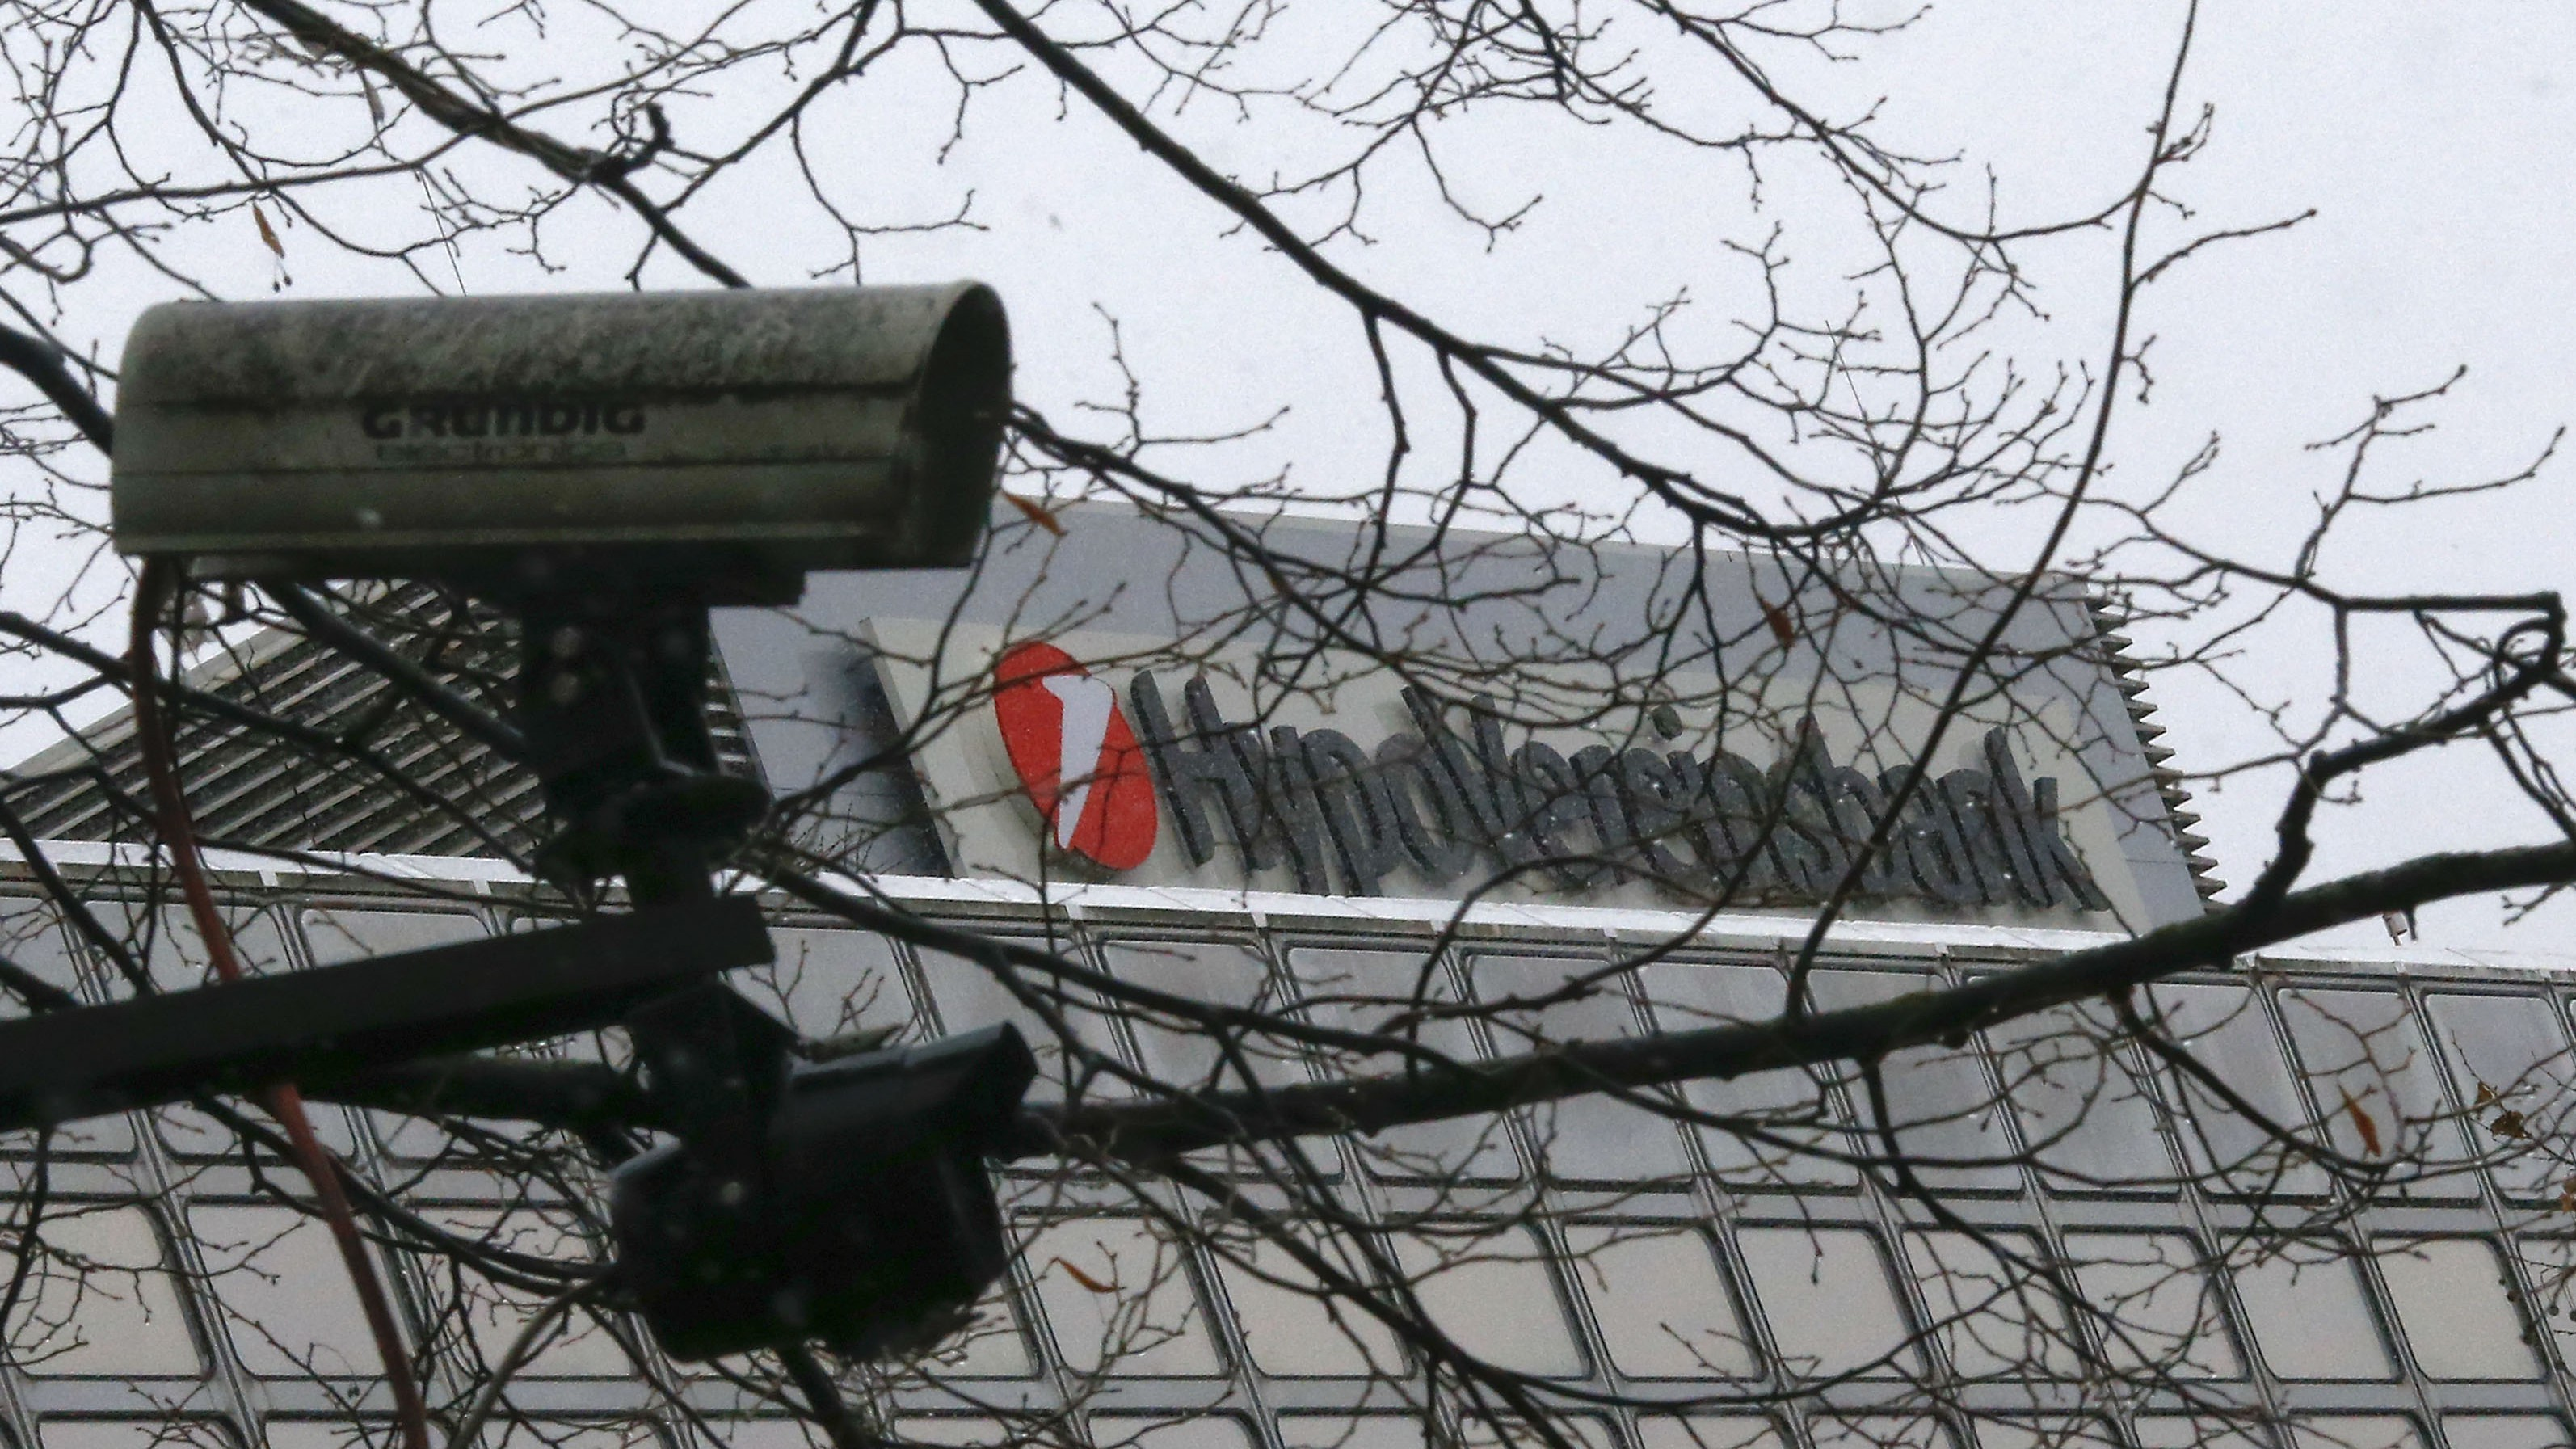 A CCTV camera is pictured next to the logo of UniCredit SpA's German unit HVB (Hypovereinsbank) in Munich November 29, 2012. State prosecutors raided the Munich offices of UniCredit SpA's German unit HVB as part of a tax evasion probe relating to share deals several years ago, HVB said on Thursday.